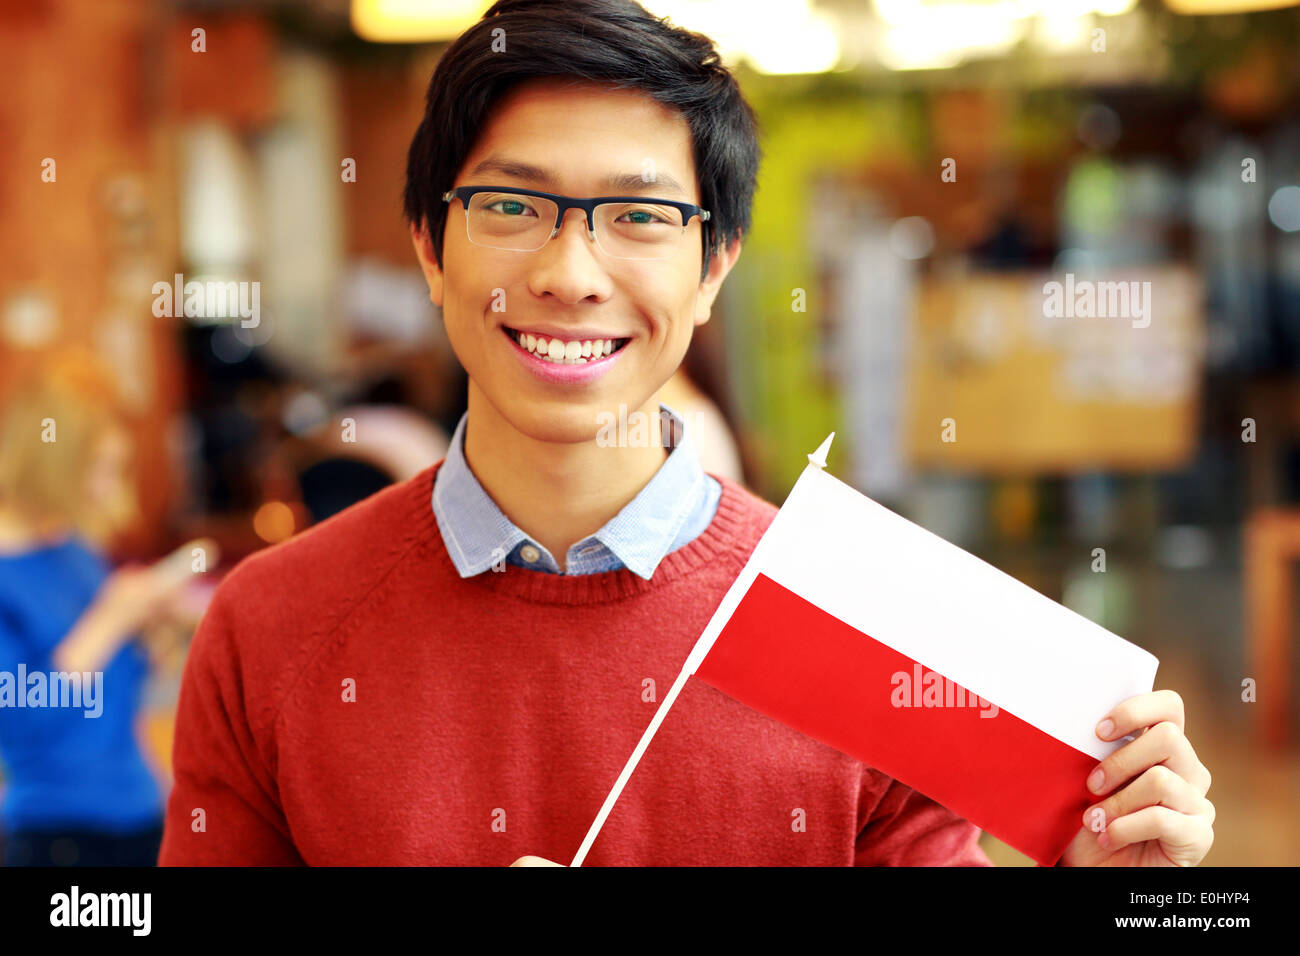 Smiling asian boy in glasses holding flag of Poland - Stock Image